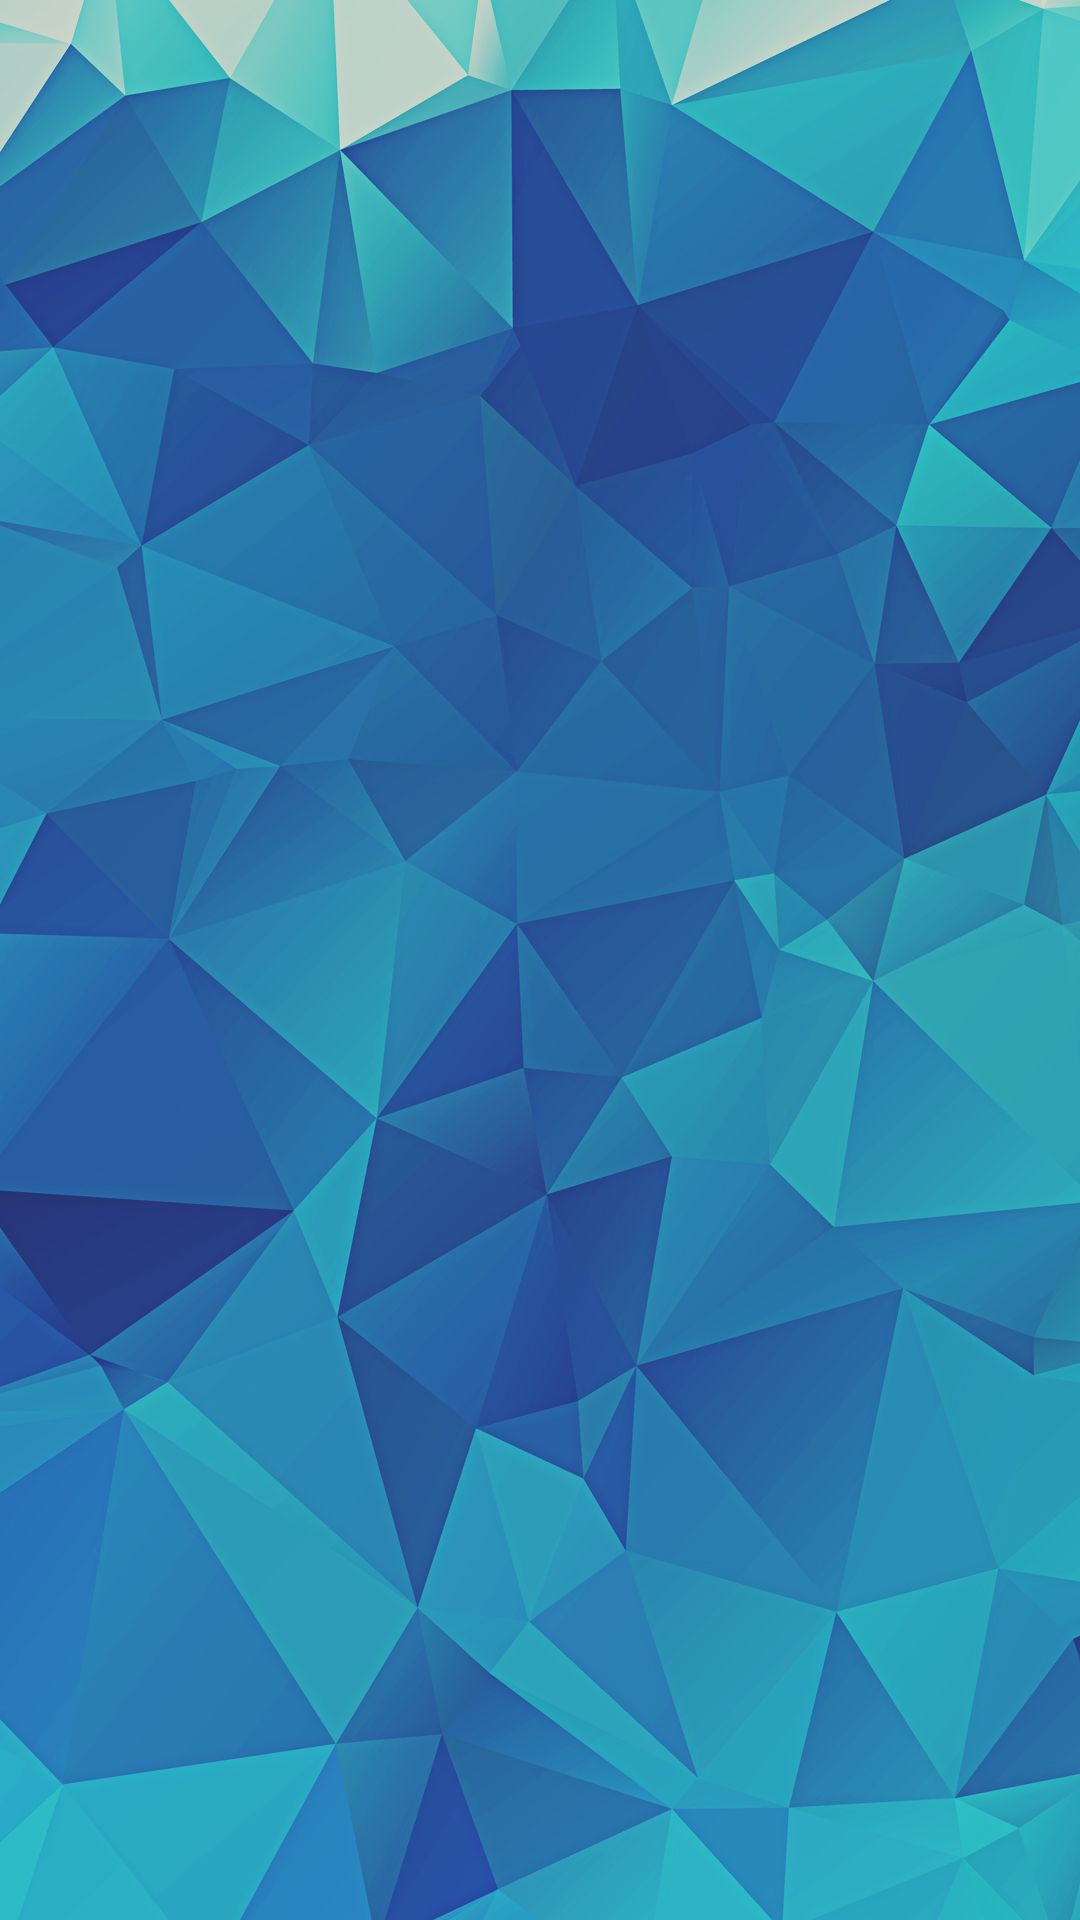 Low Poly Blue Triangles Iphone 6 Hd Wallpaper Design Phone